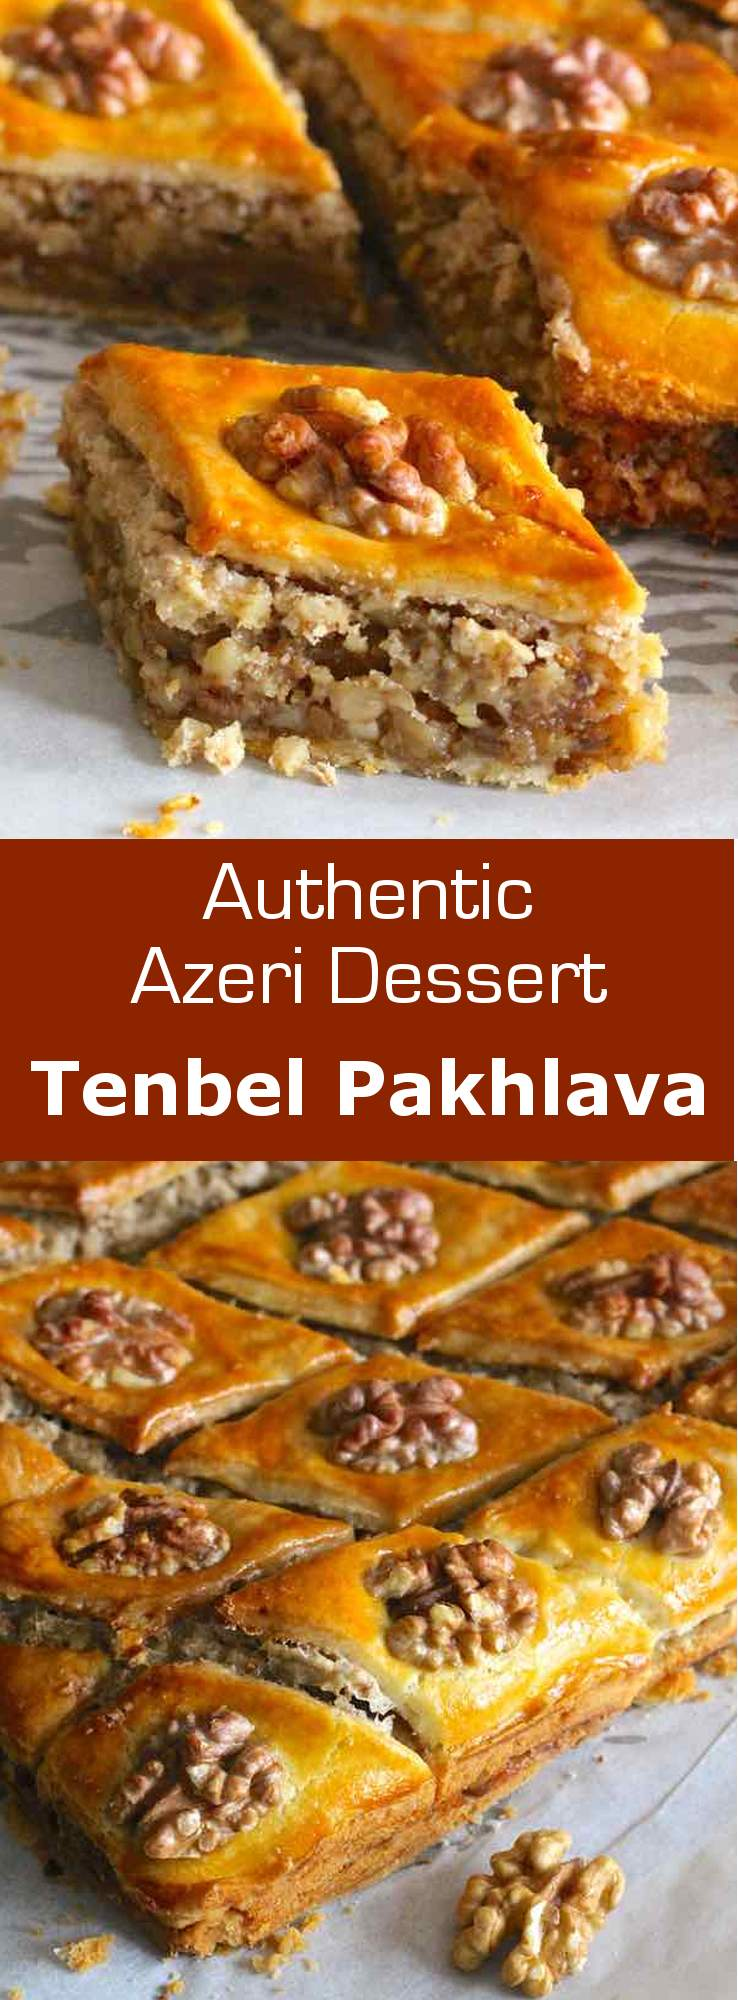 Tenbel pakhlava (lazy baklava) is the recipe of a delicious and easy to make baklava from Azerbaijan. #azerbaijan #dessert #pastry #196flavors